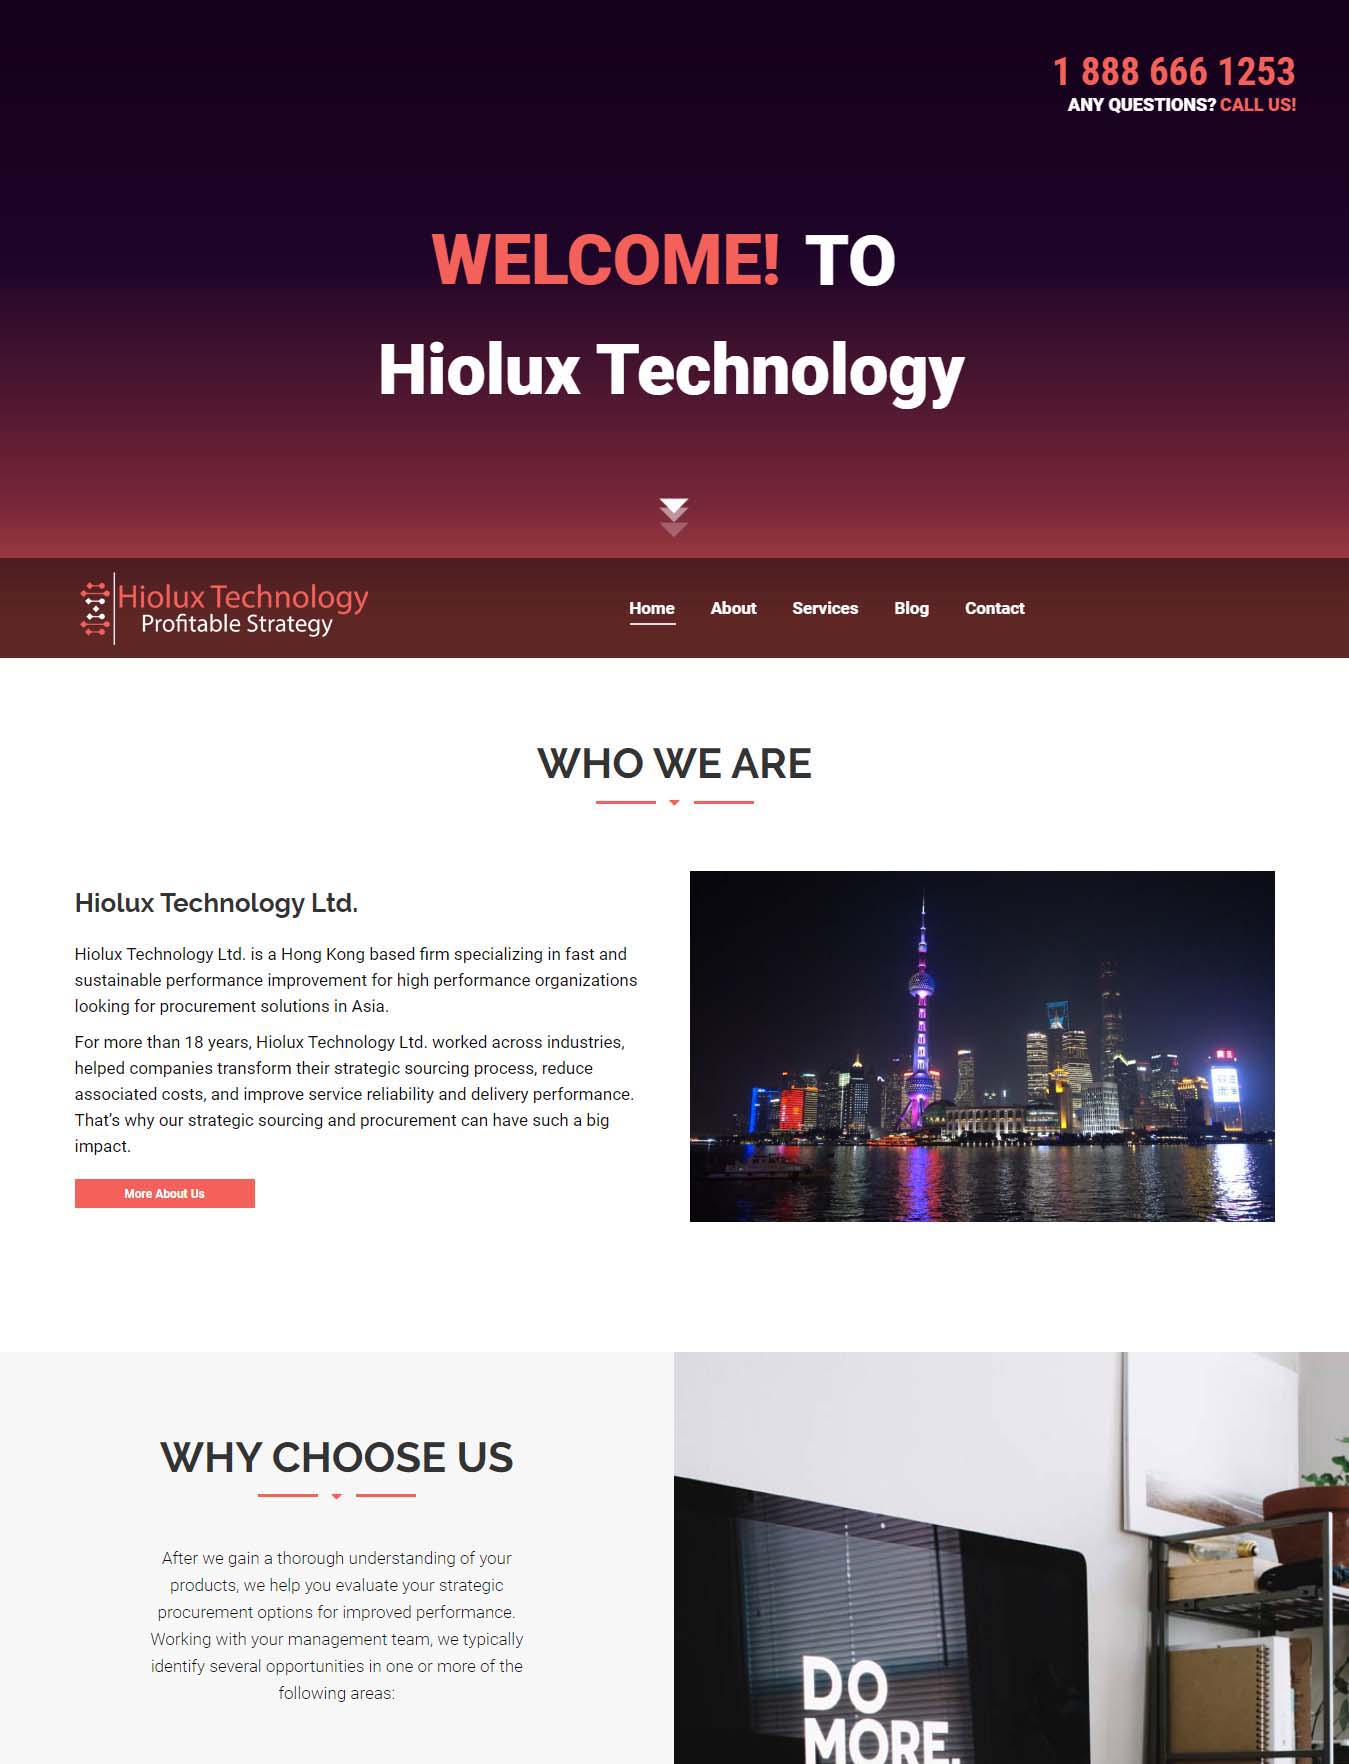 Hiolux Technology